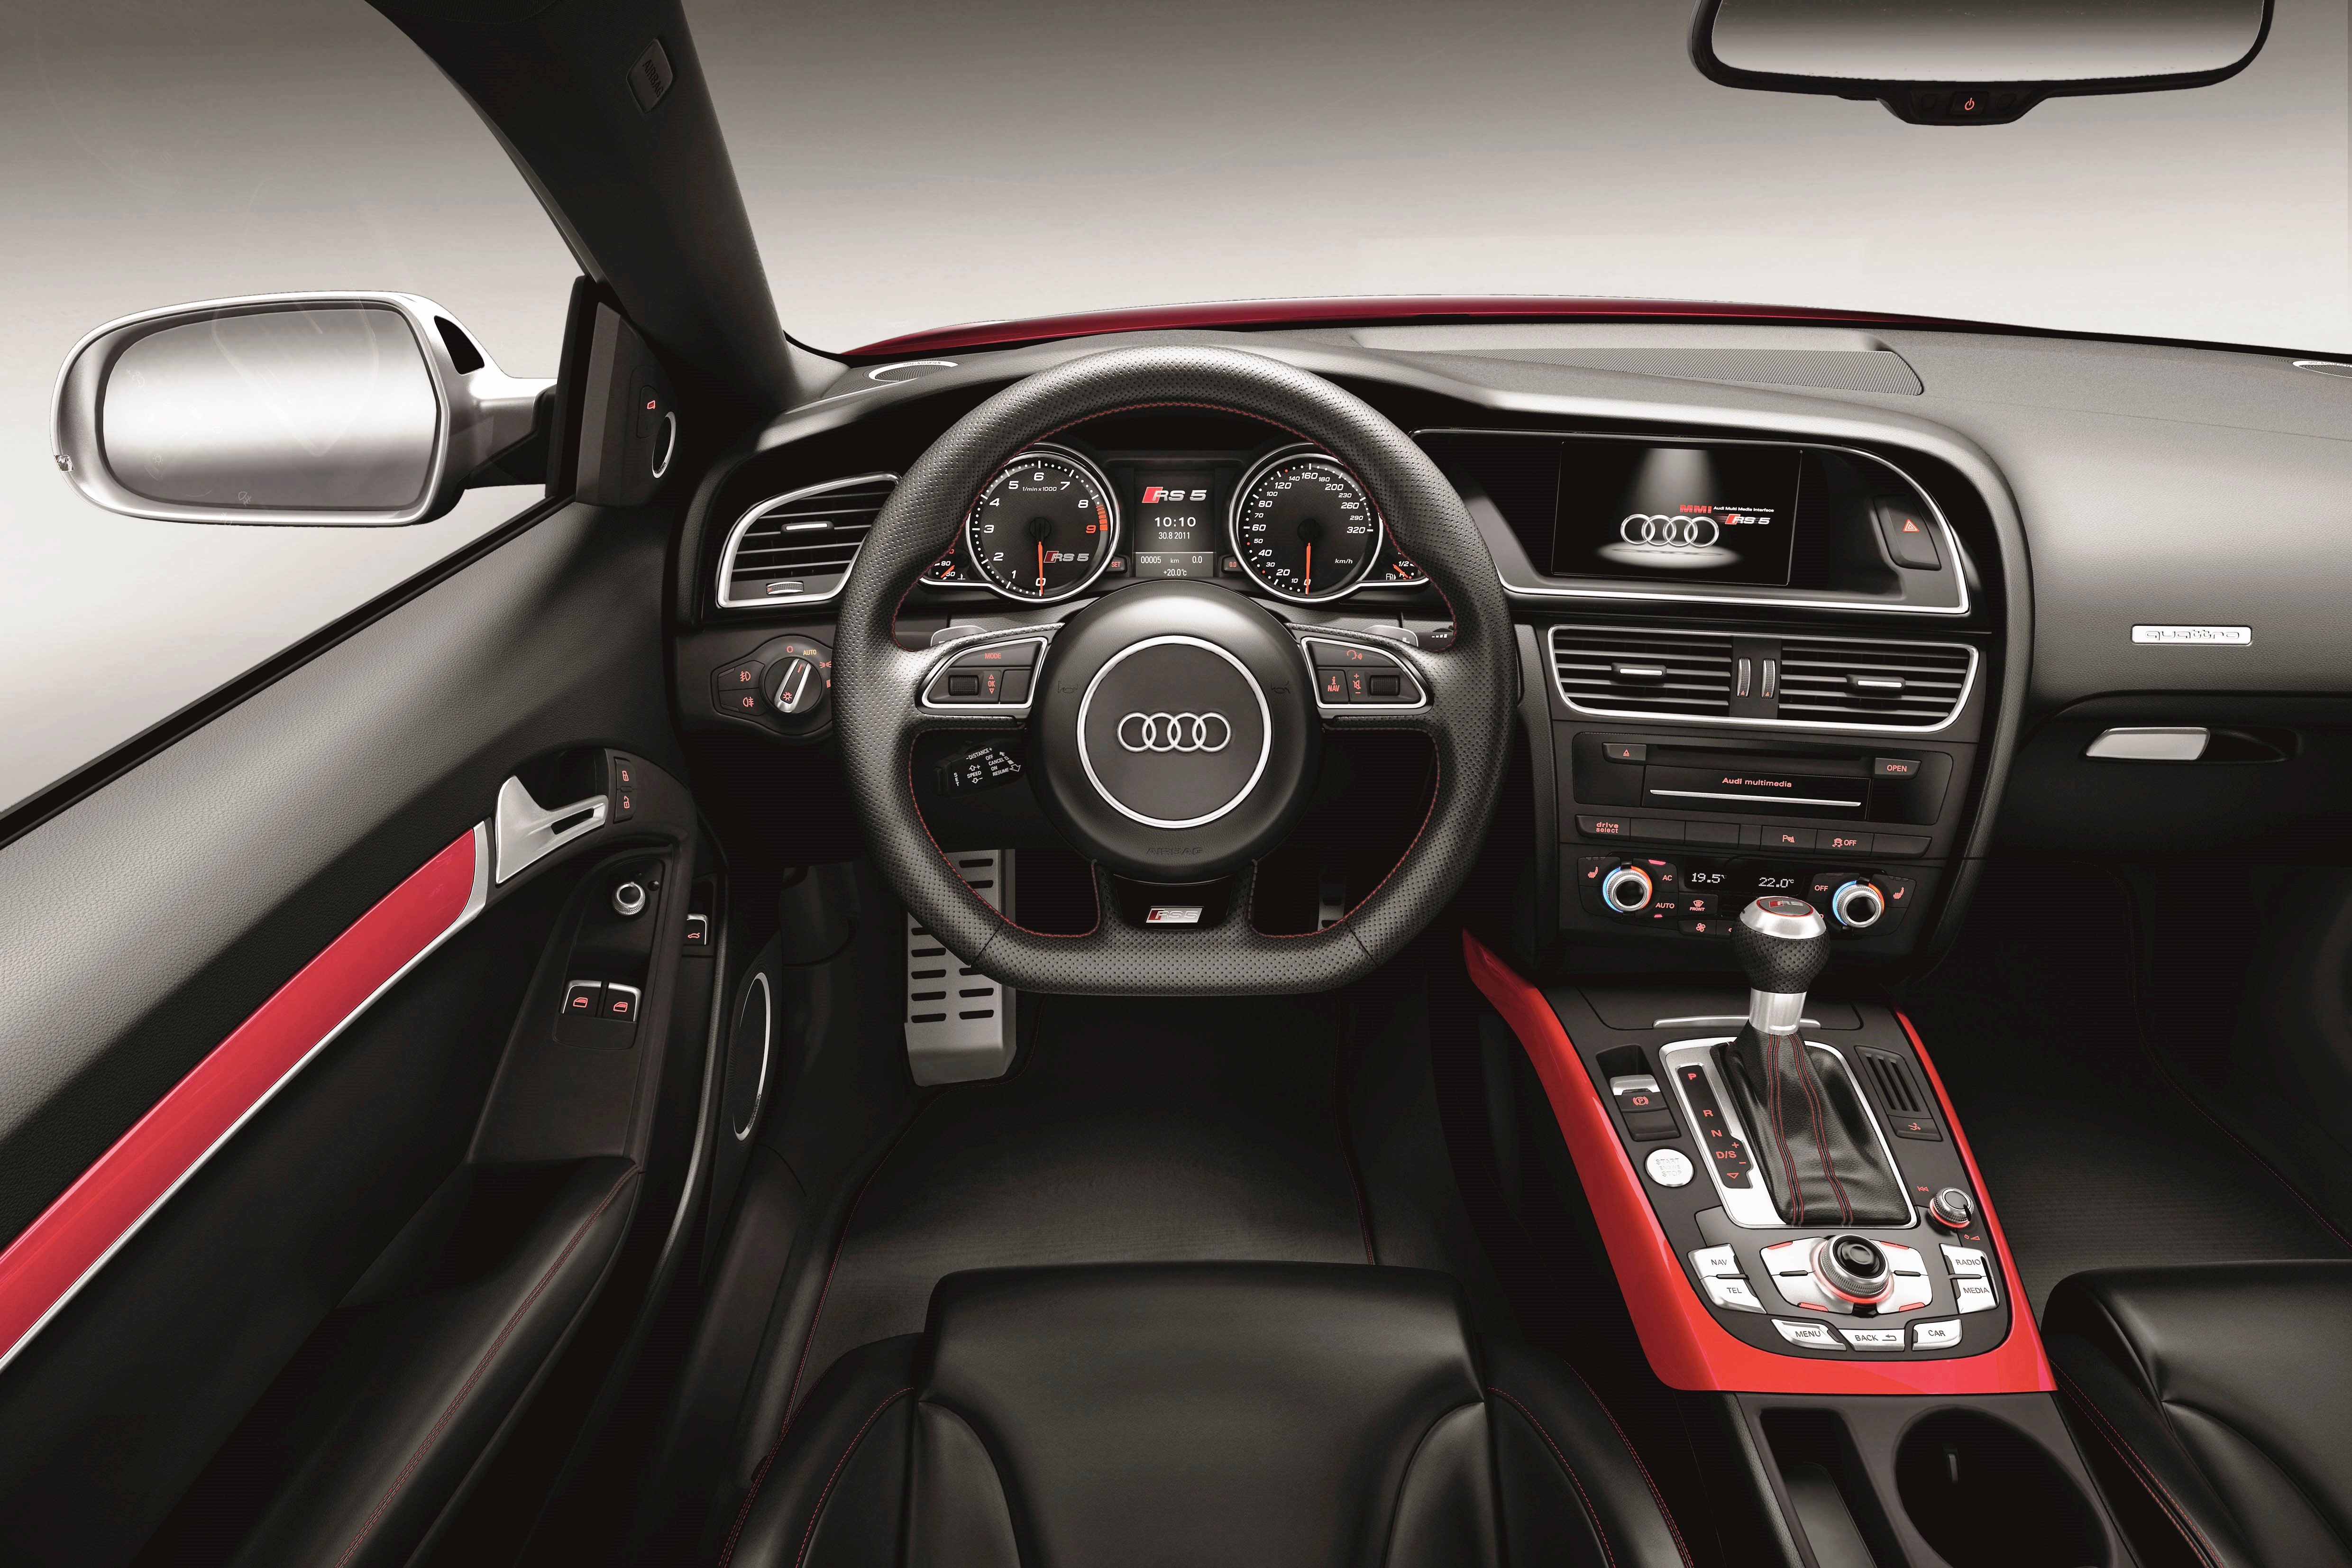 2014 Audi RS5 | Top Speed. »